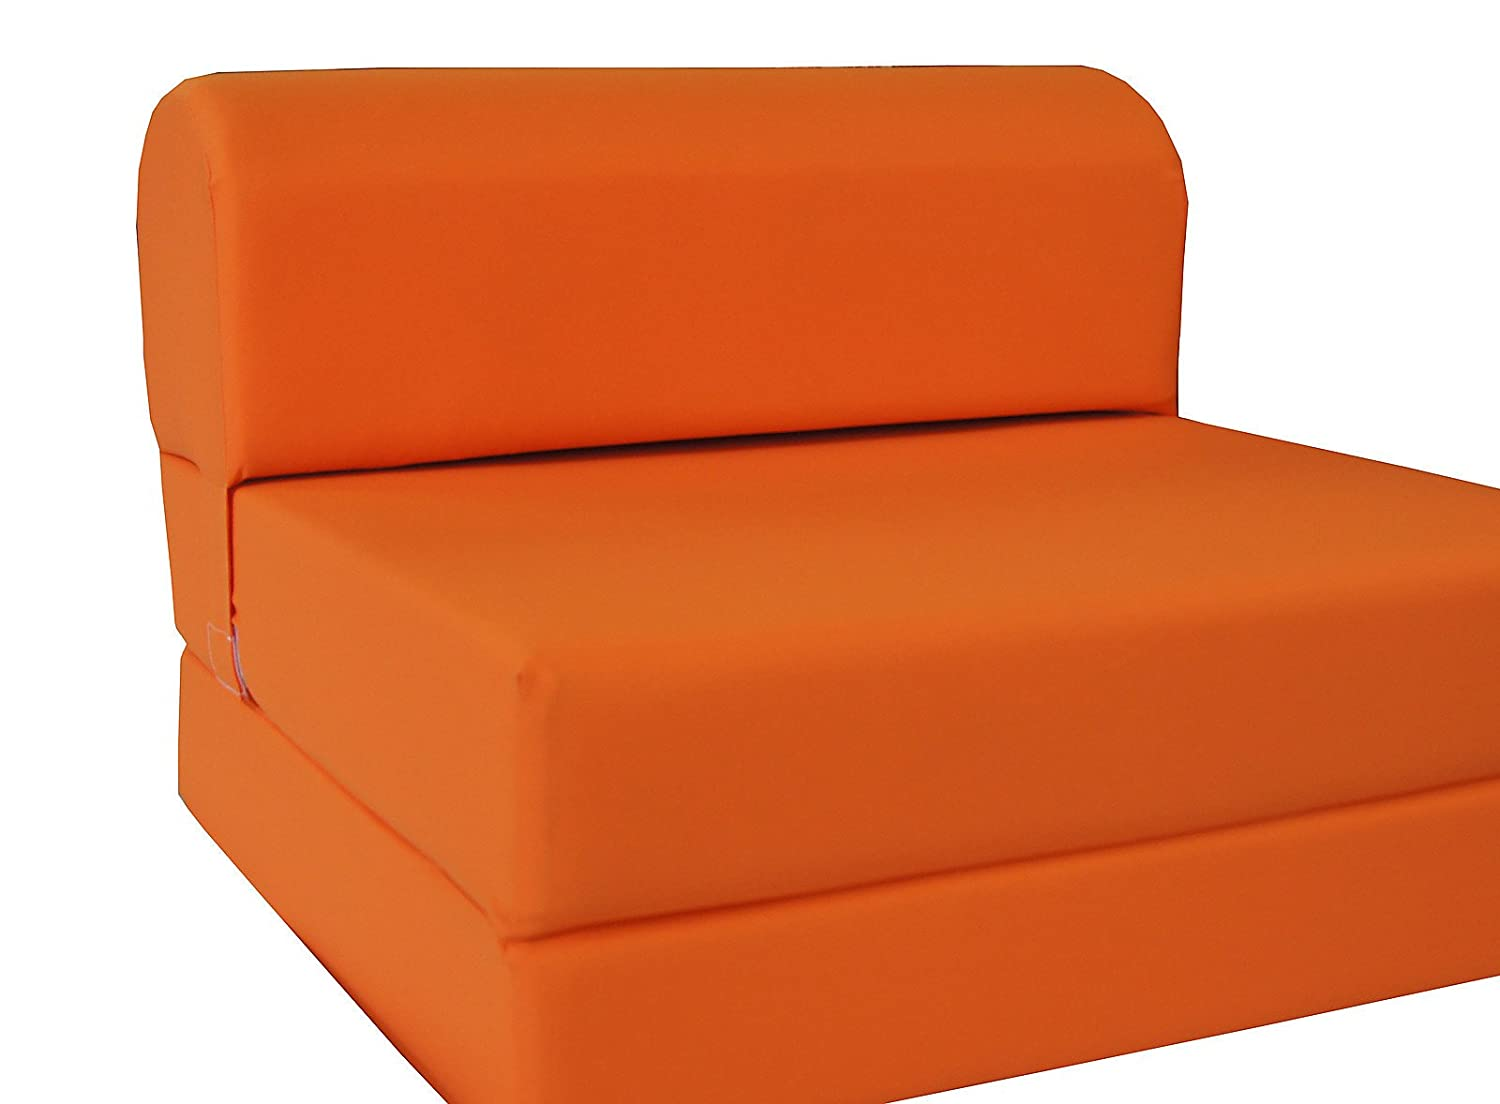 Amazon Orange Sleeper Chair Folding Foam Bed Sized 6 Thick X 32 Wide 70 Long Studio Guest Foldable Beds Sofa Couch High Density